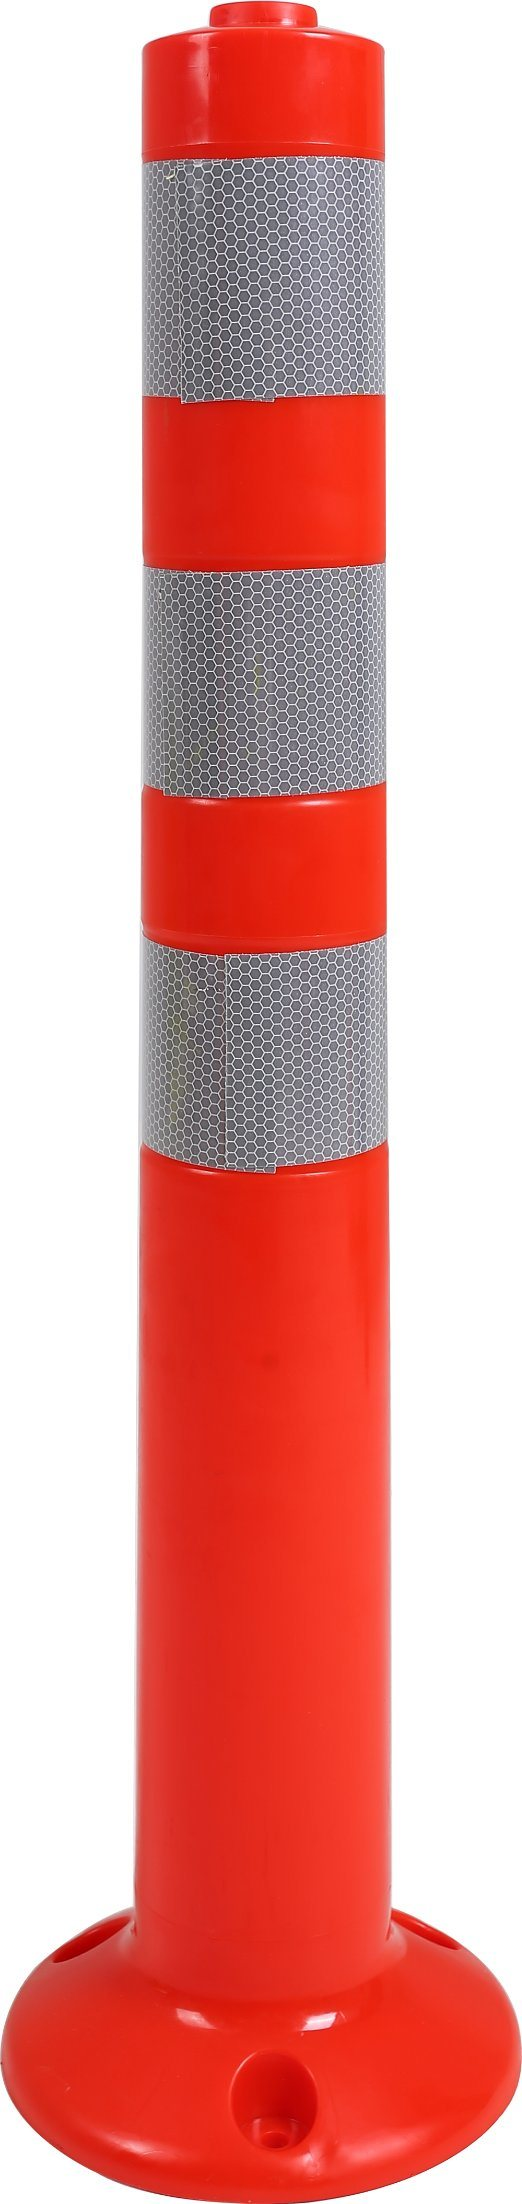 High-Luminance Reasonable Price 750mm PVC Warning Post